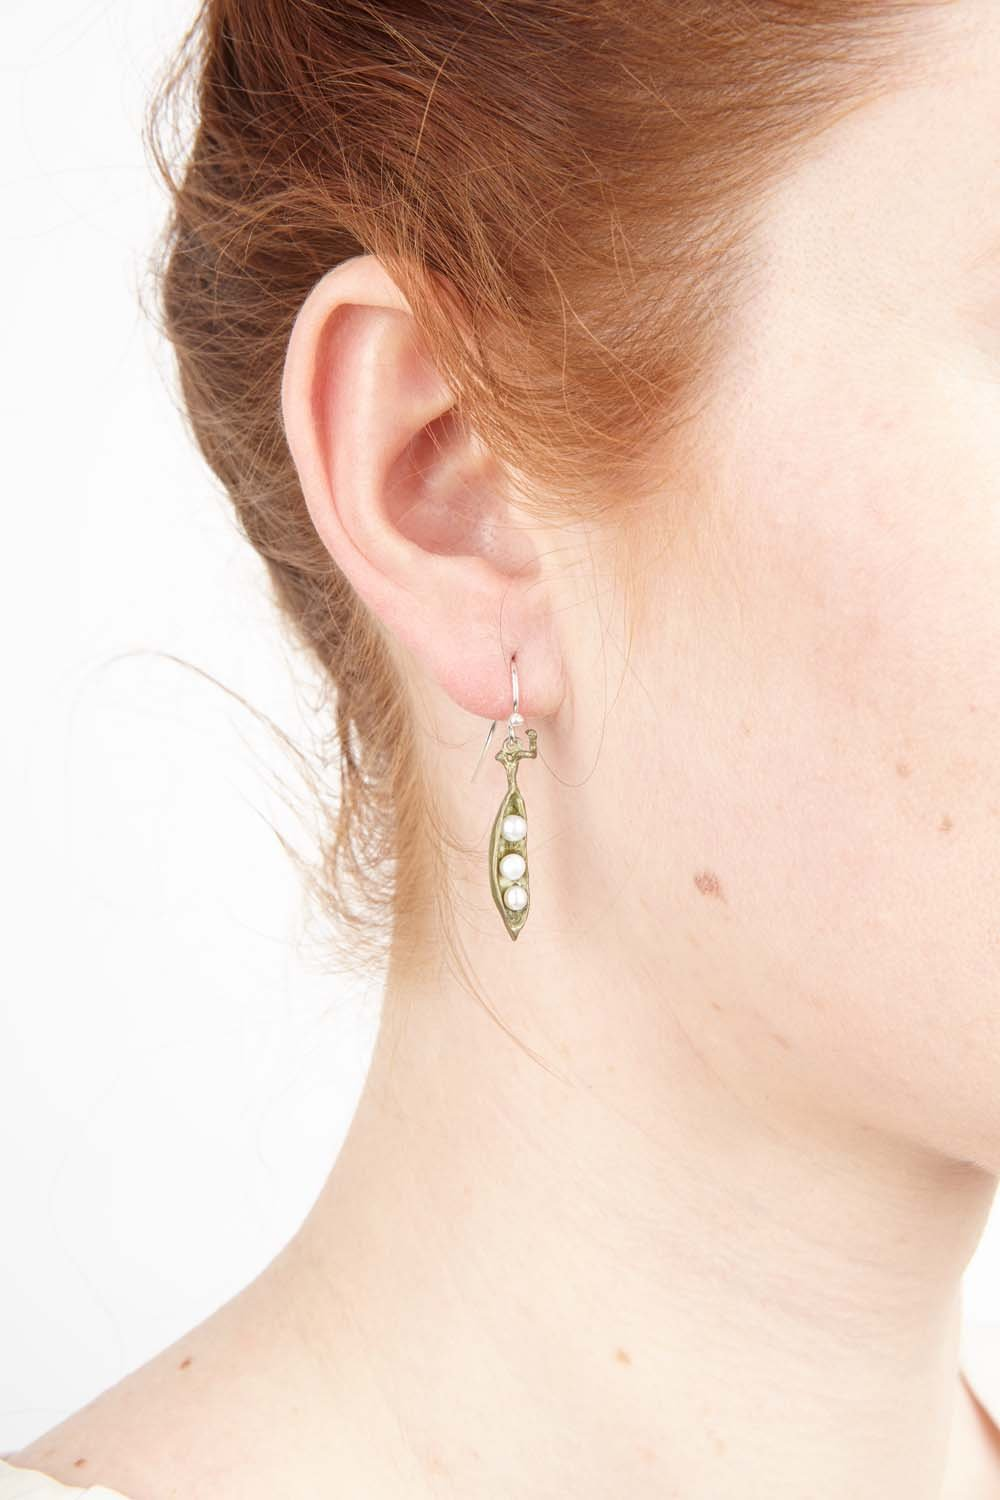 Pea Pod Earrings - Petite Drop